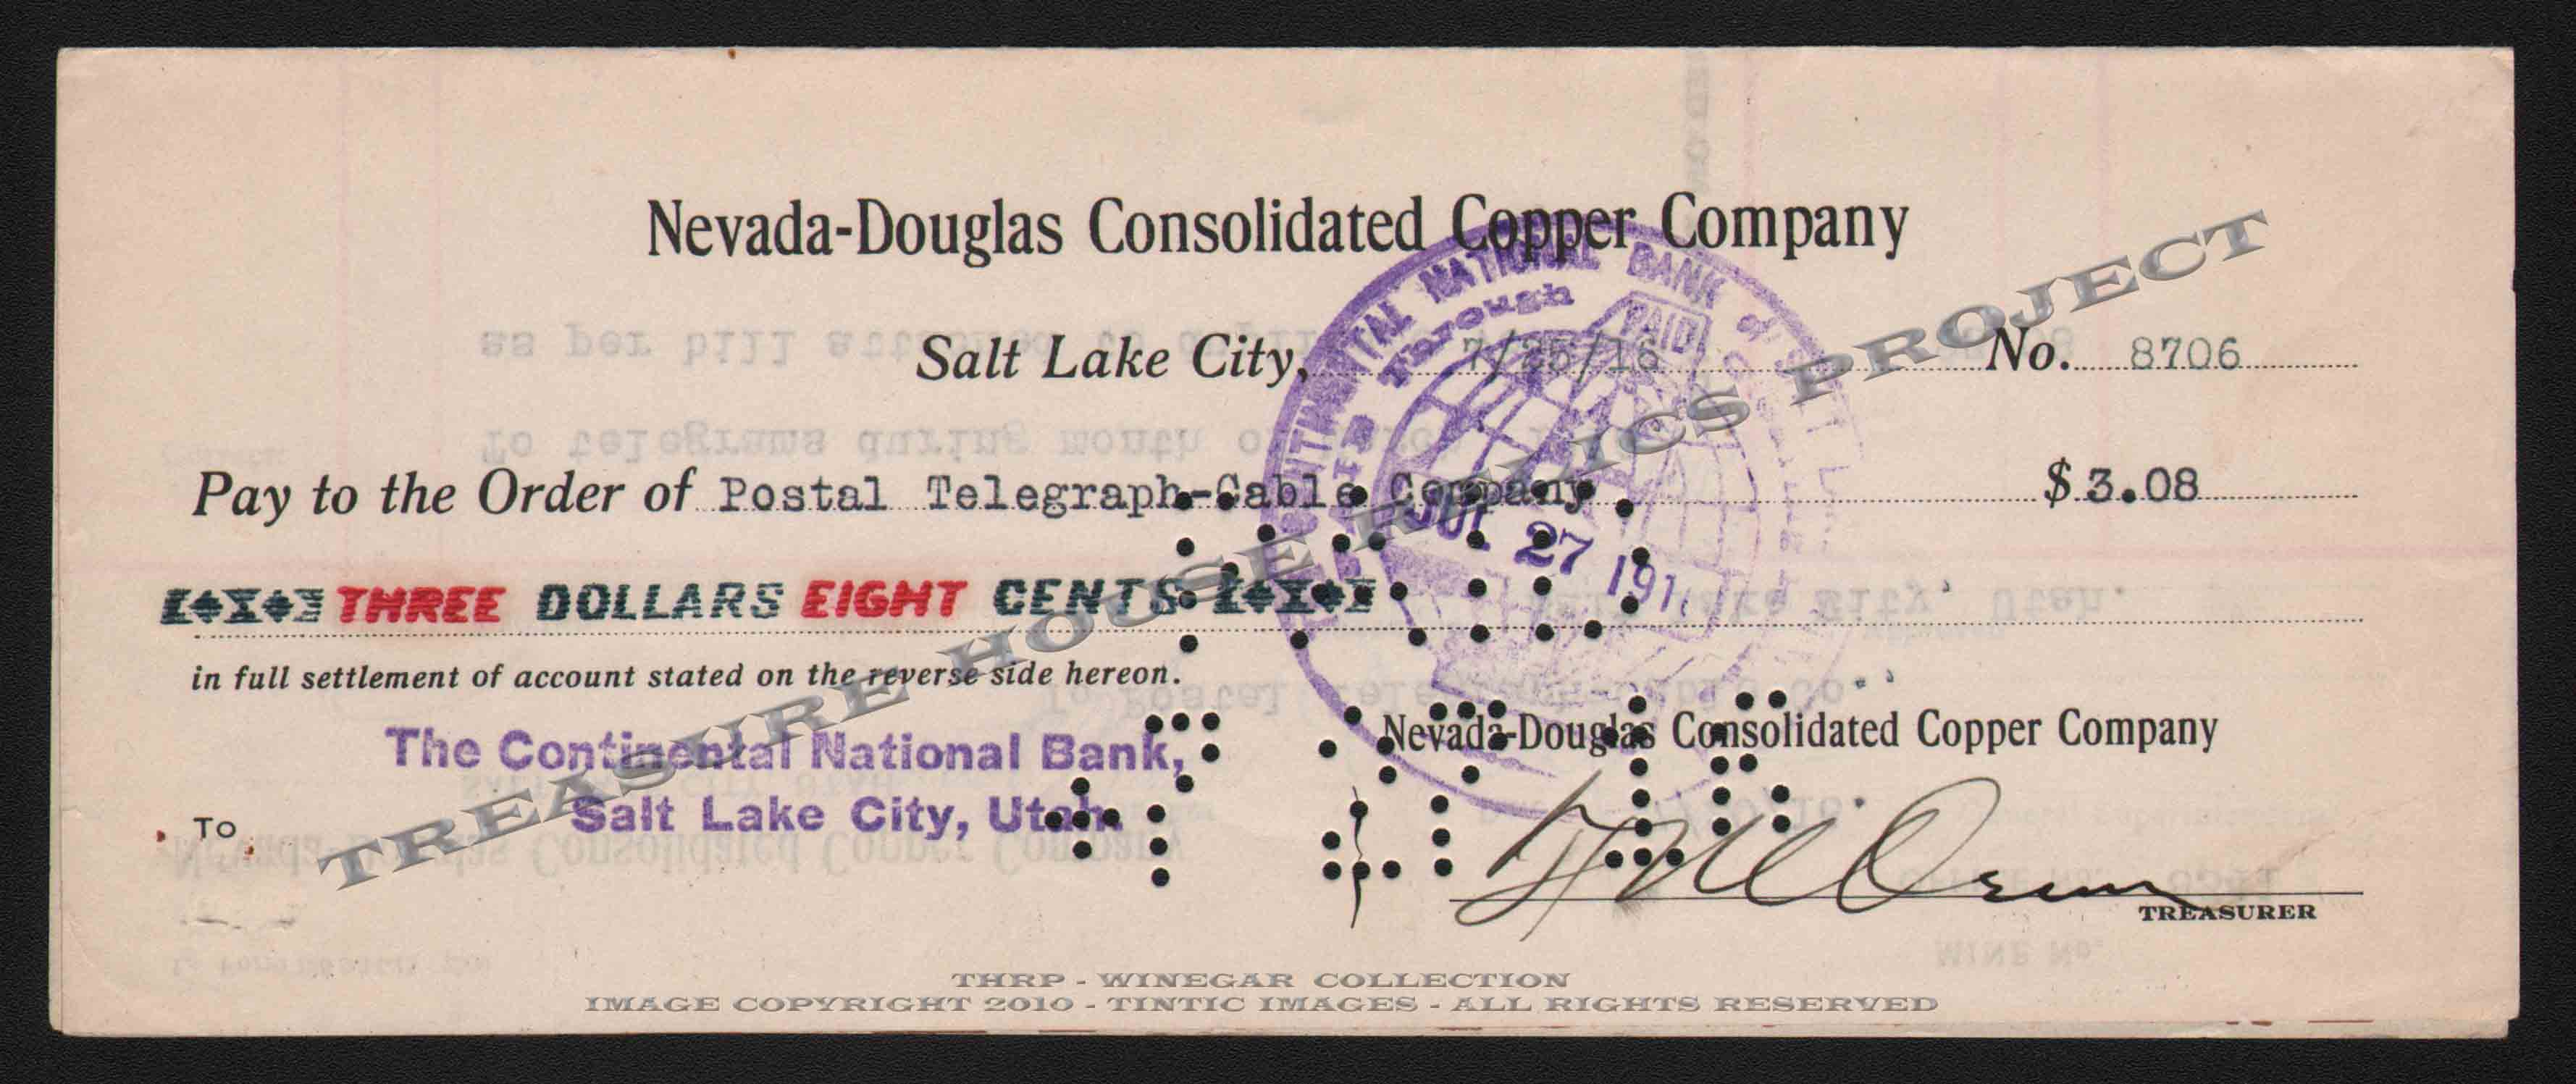 CHECK_-_NEVADA_DOUGLAS_COPPER_CO_8706_400_Inv_8687_EMBOSS.jpg